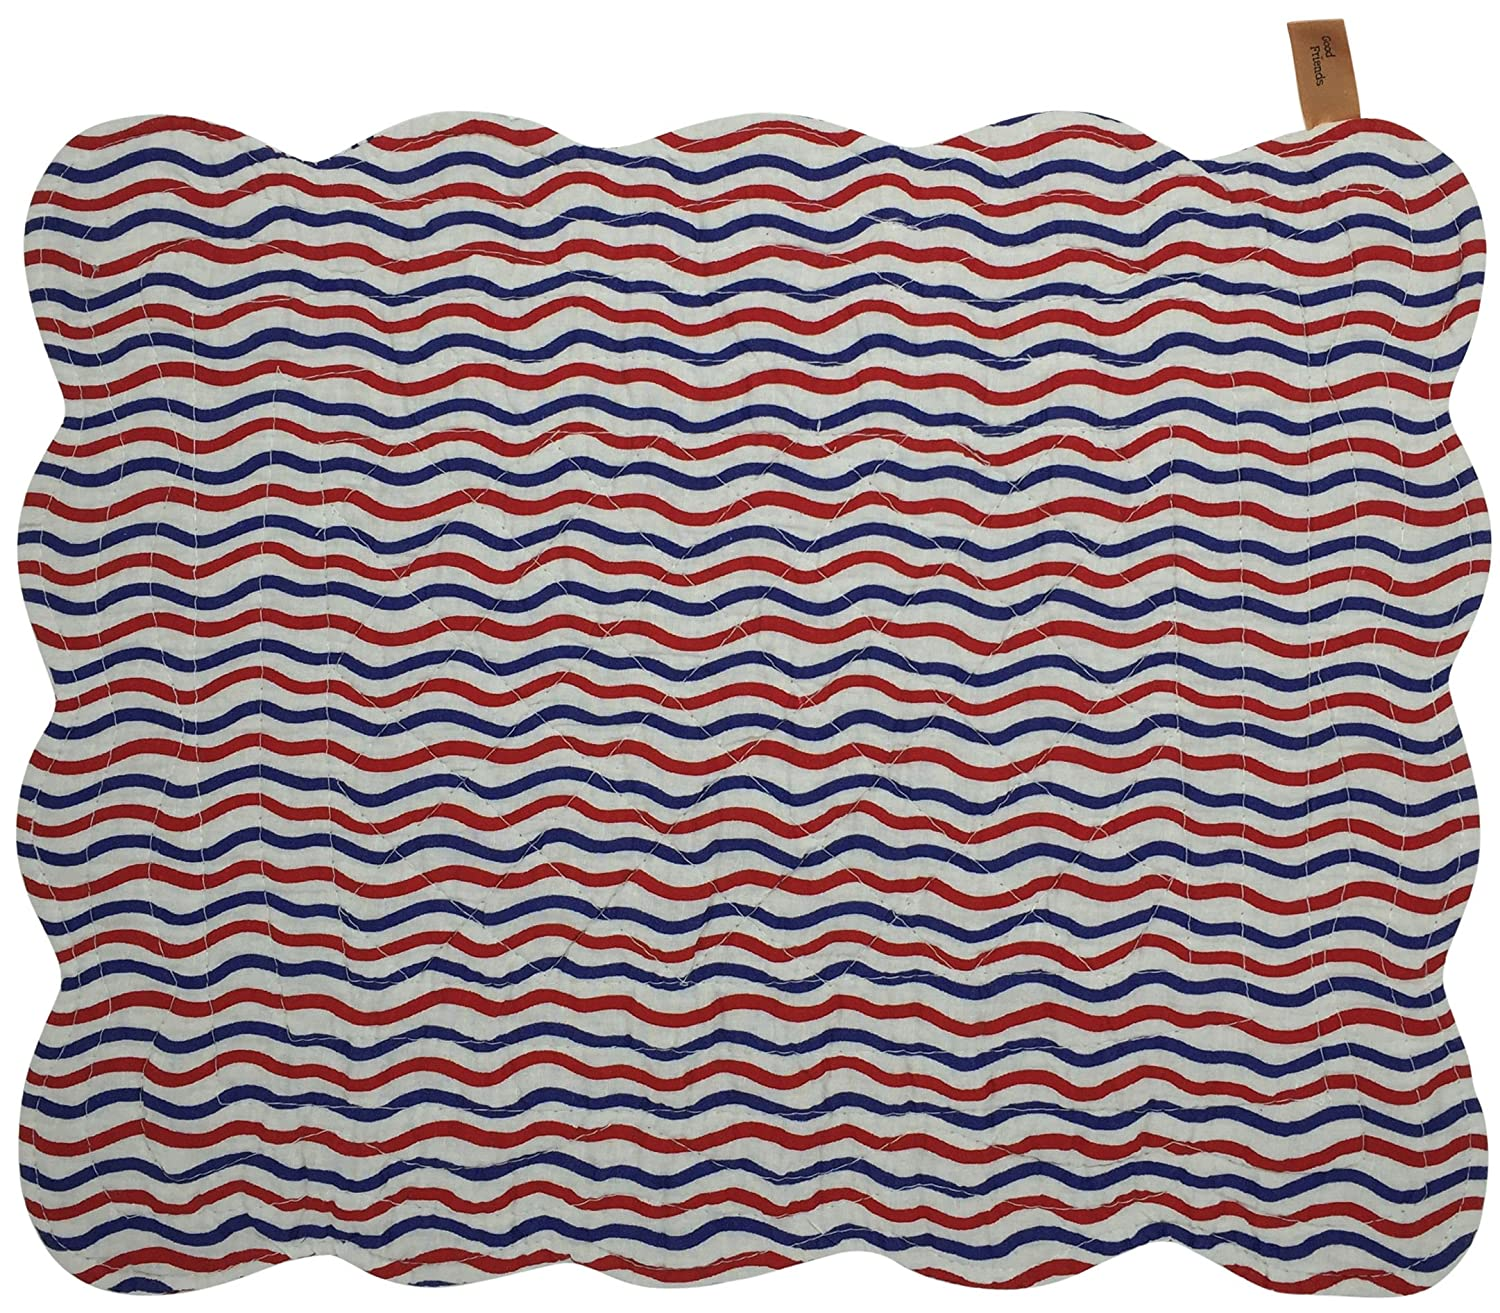 18x13 Red White 18x13 Great Finds Sparky Fireworks Reversible Quilted Cotton Placemats 0255PM Set of 4